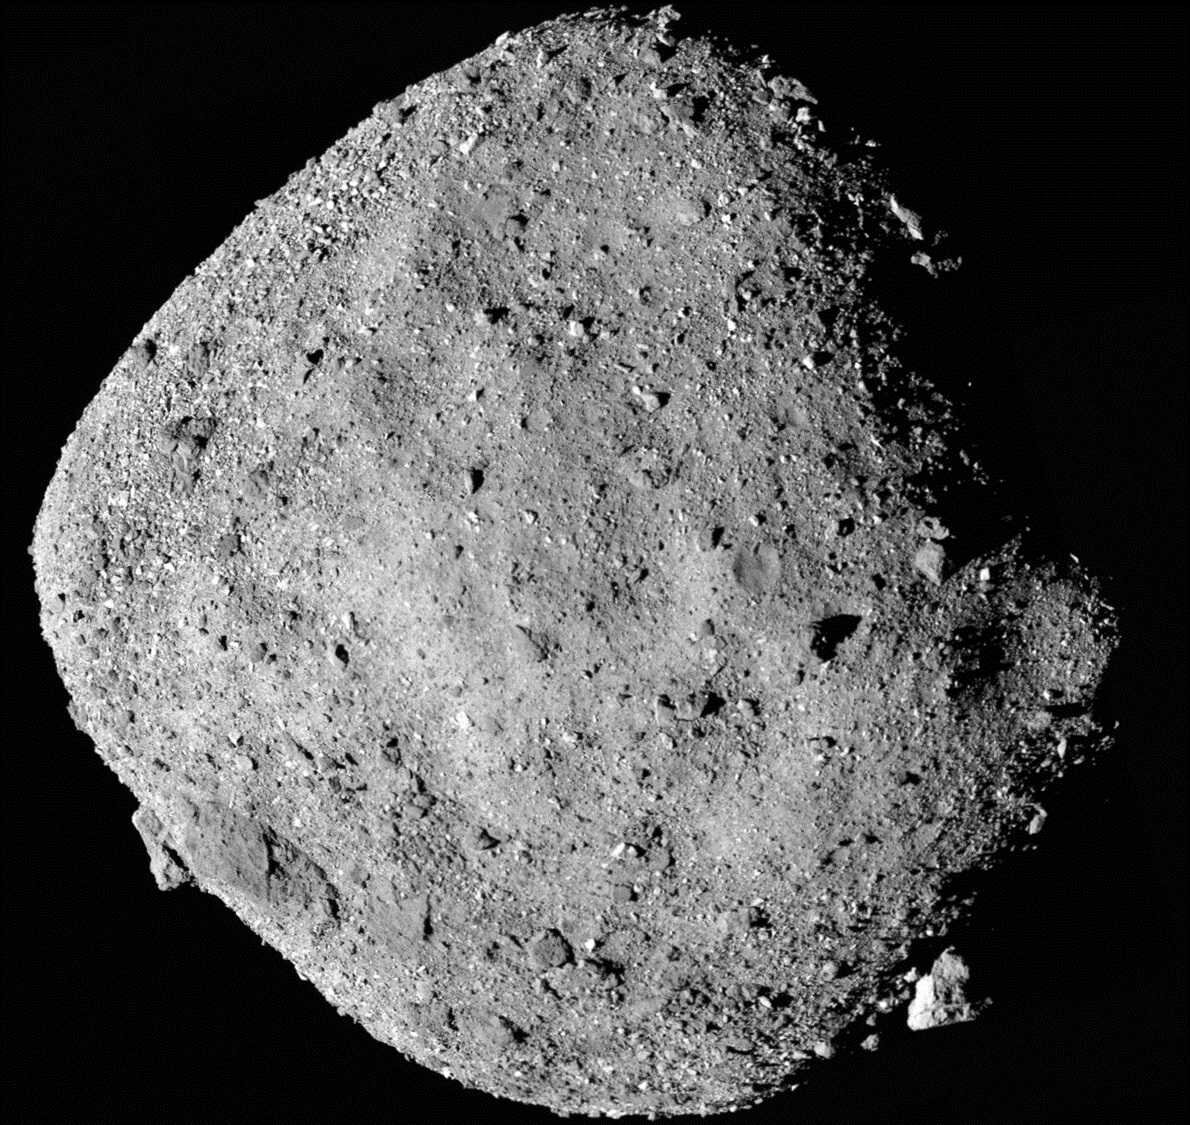 Study indicates sand-sized meteoroids are peppering asteroid Bennu